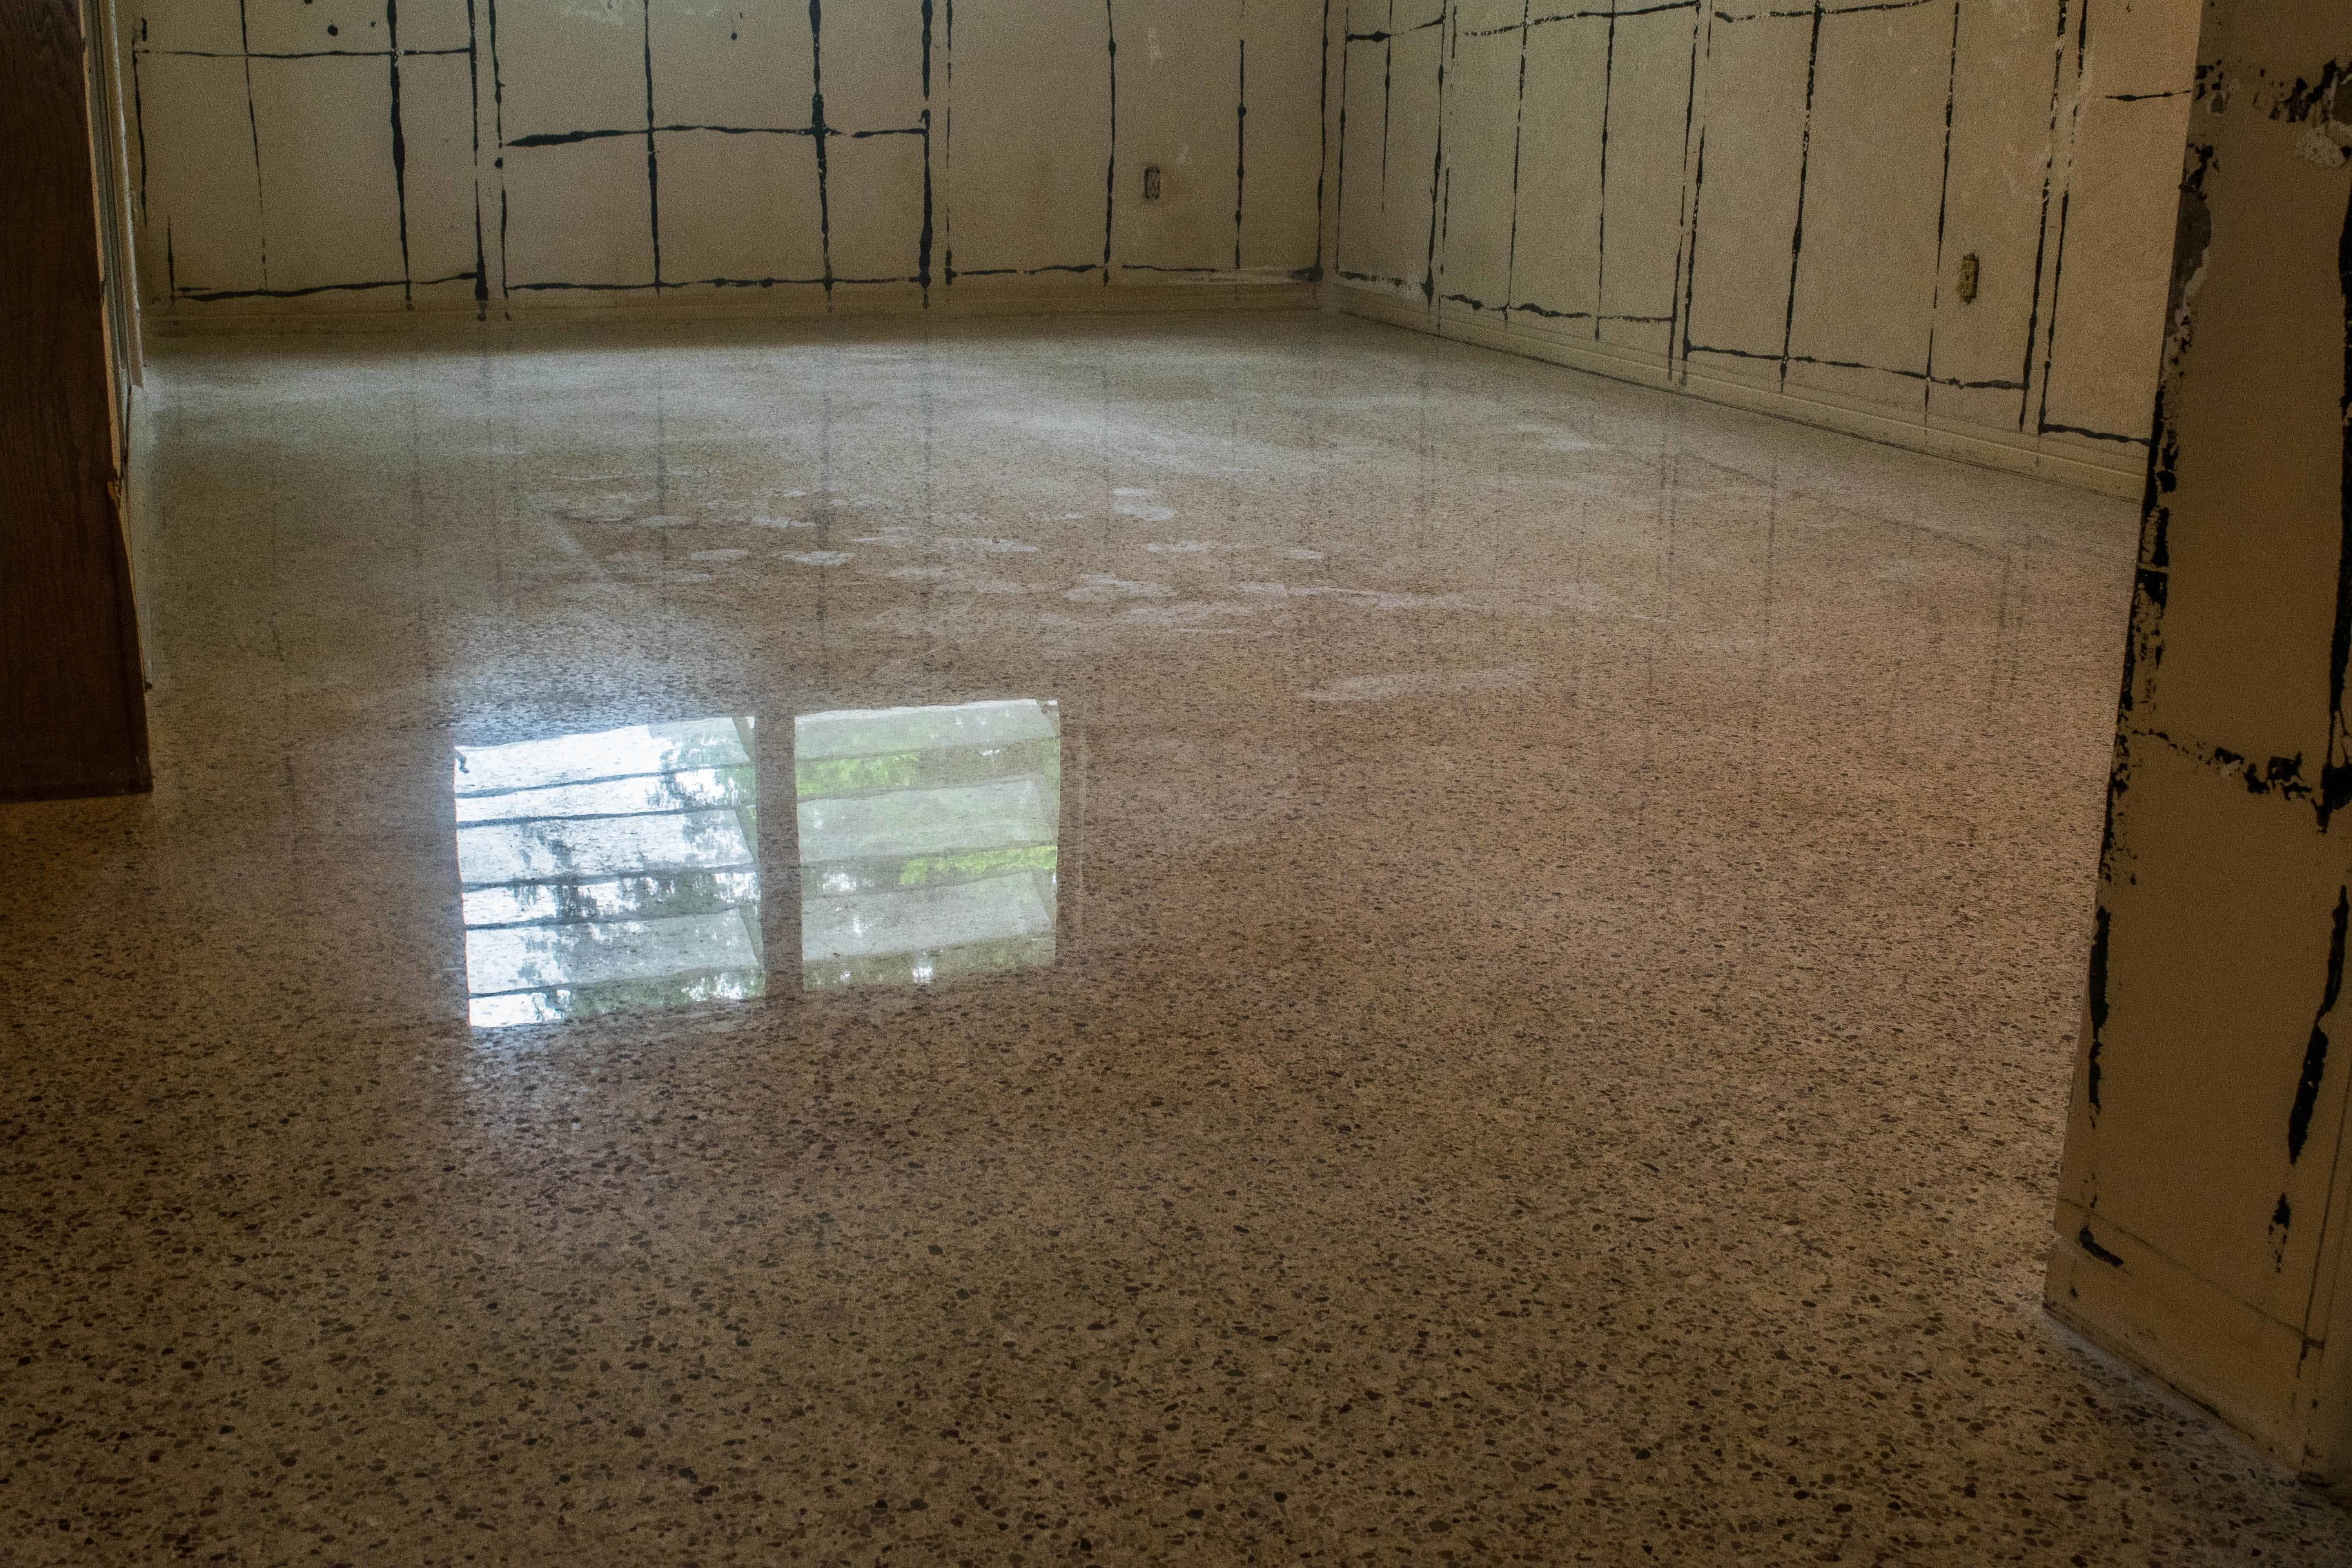 Terrazzo Flooring With Severe Pad Damage May Still Be Restored